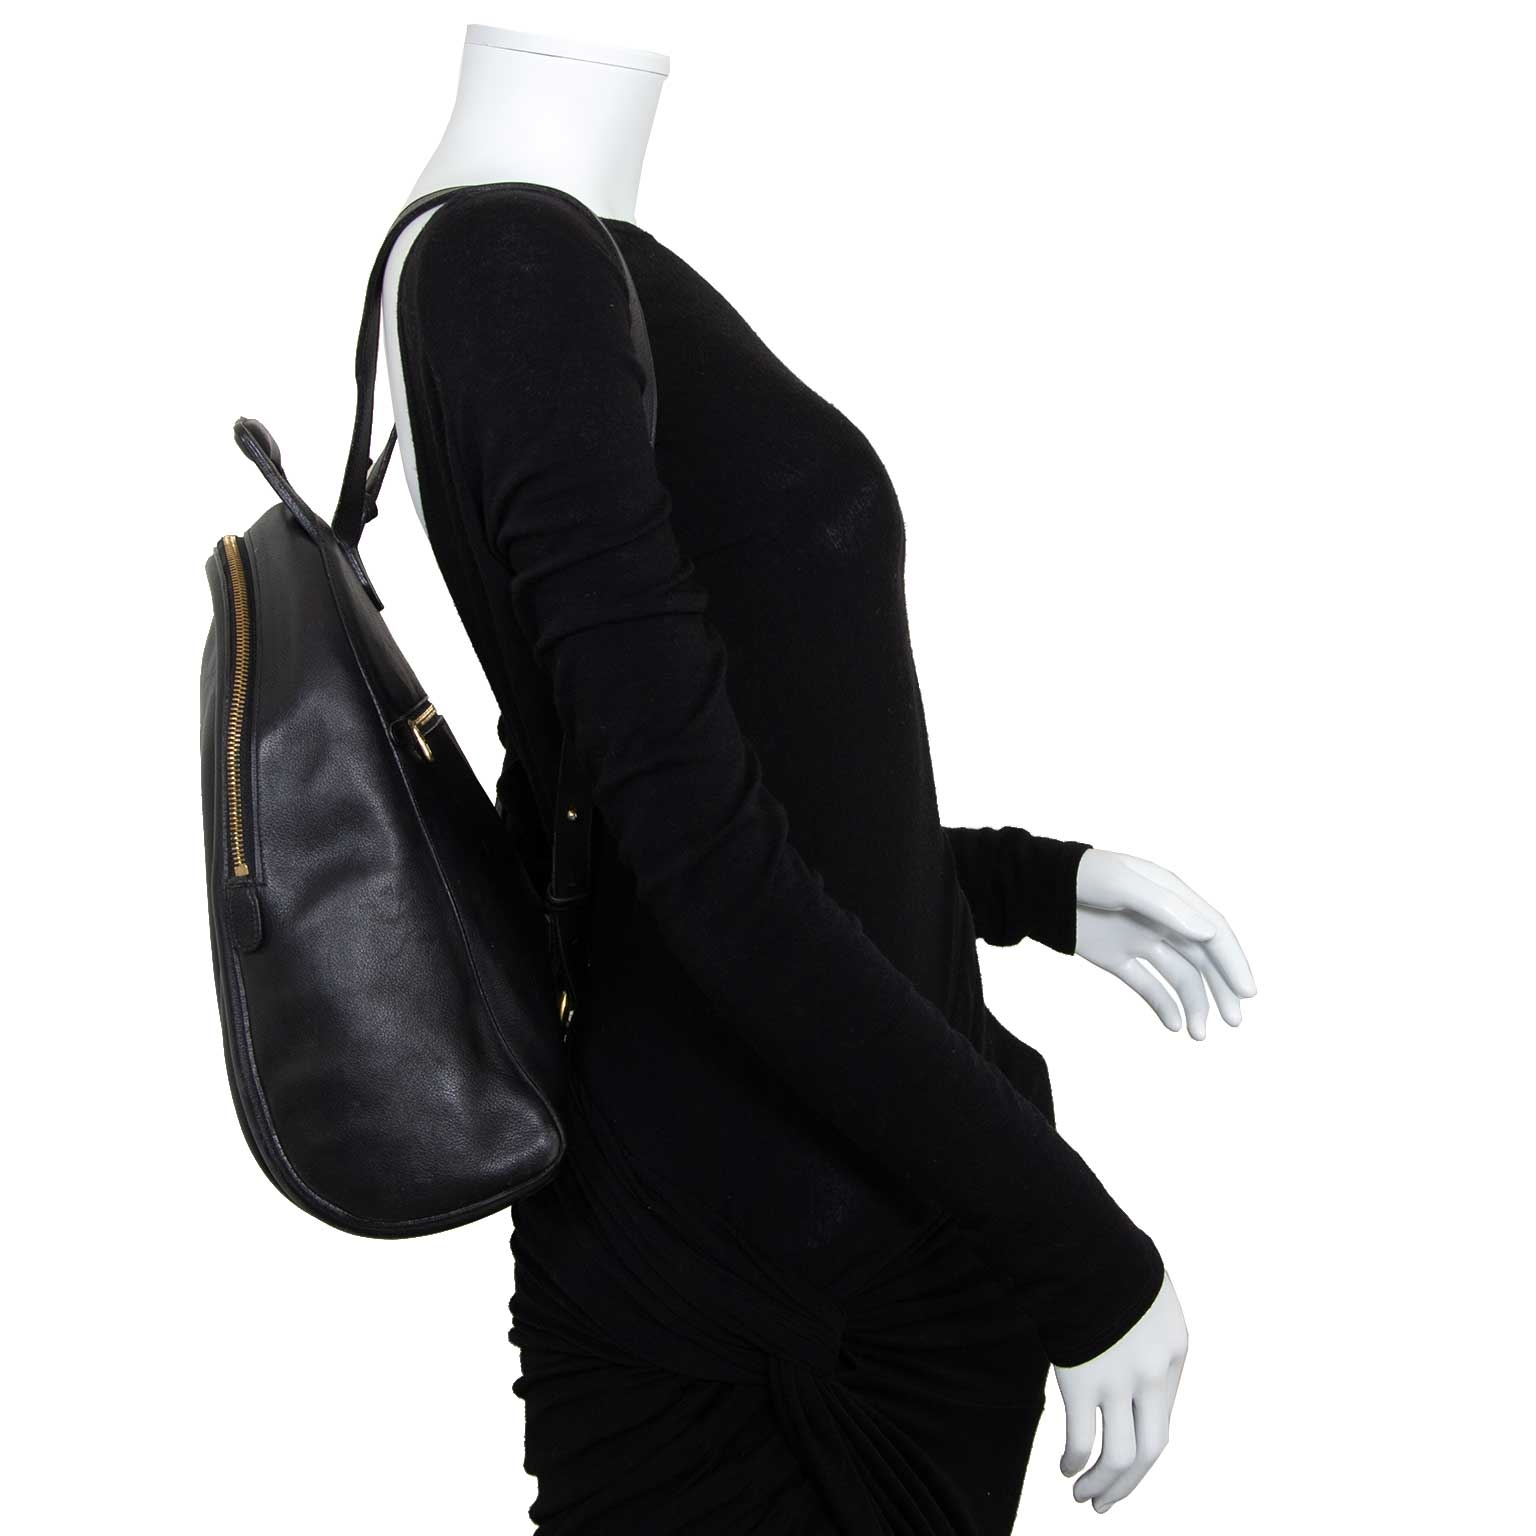 delvaux black leather backpack now for sale at labellov vintage fashion webshop belgium